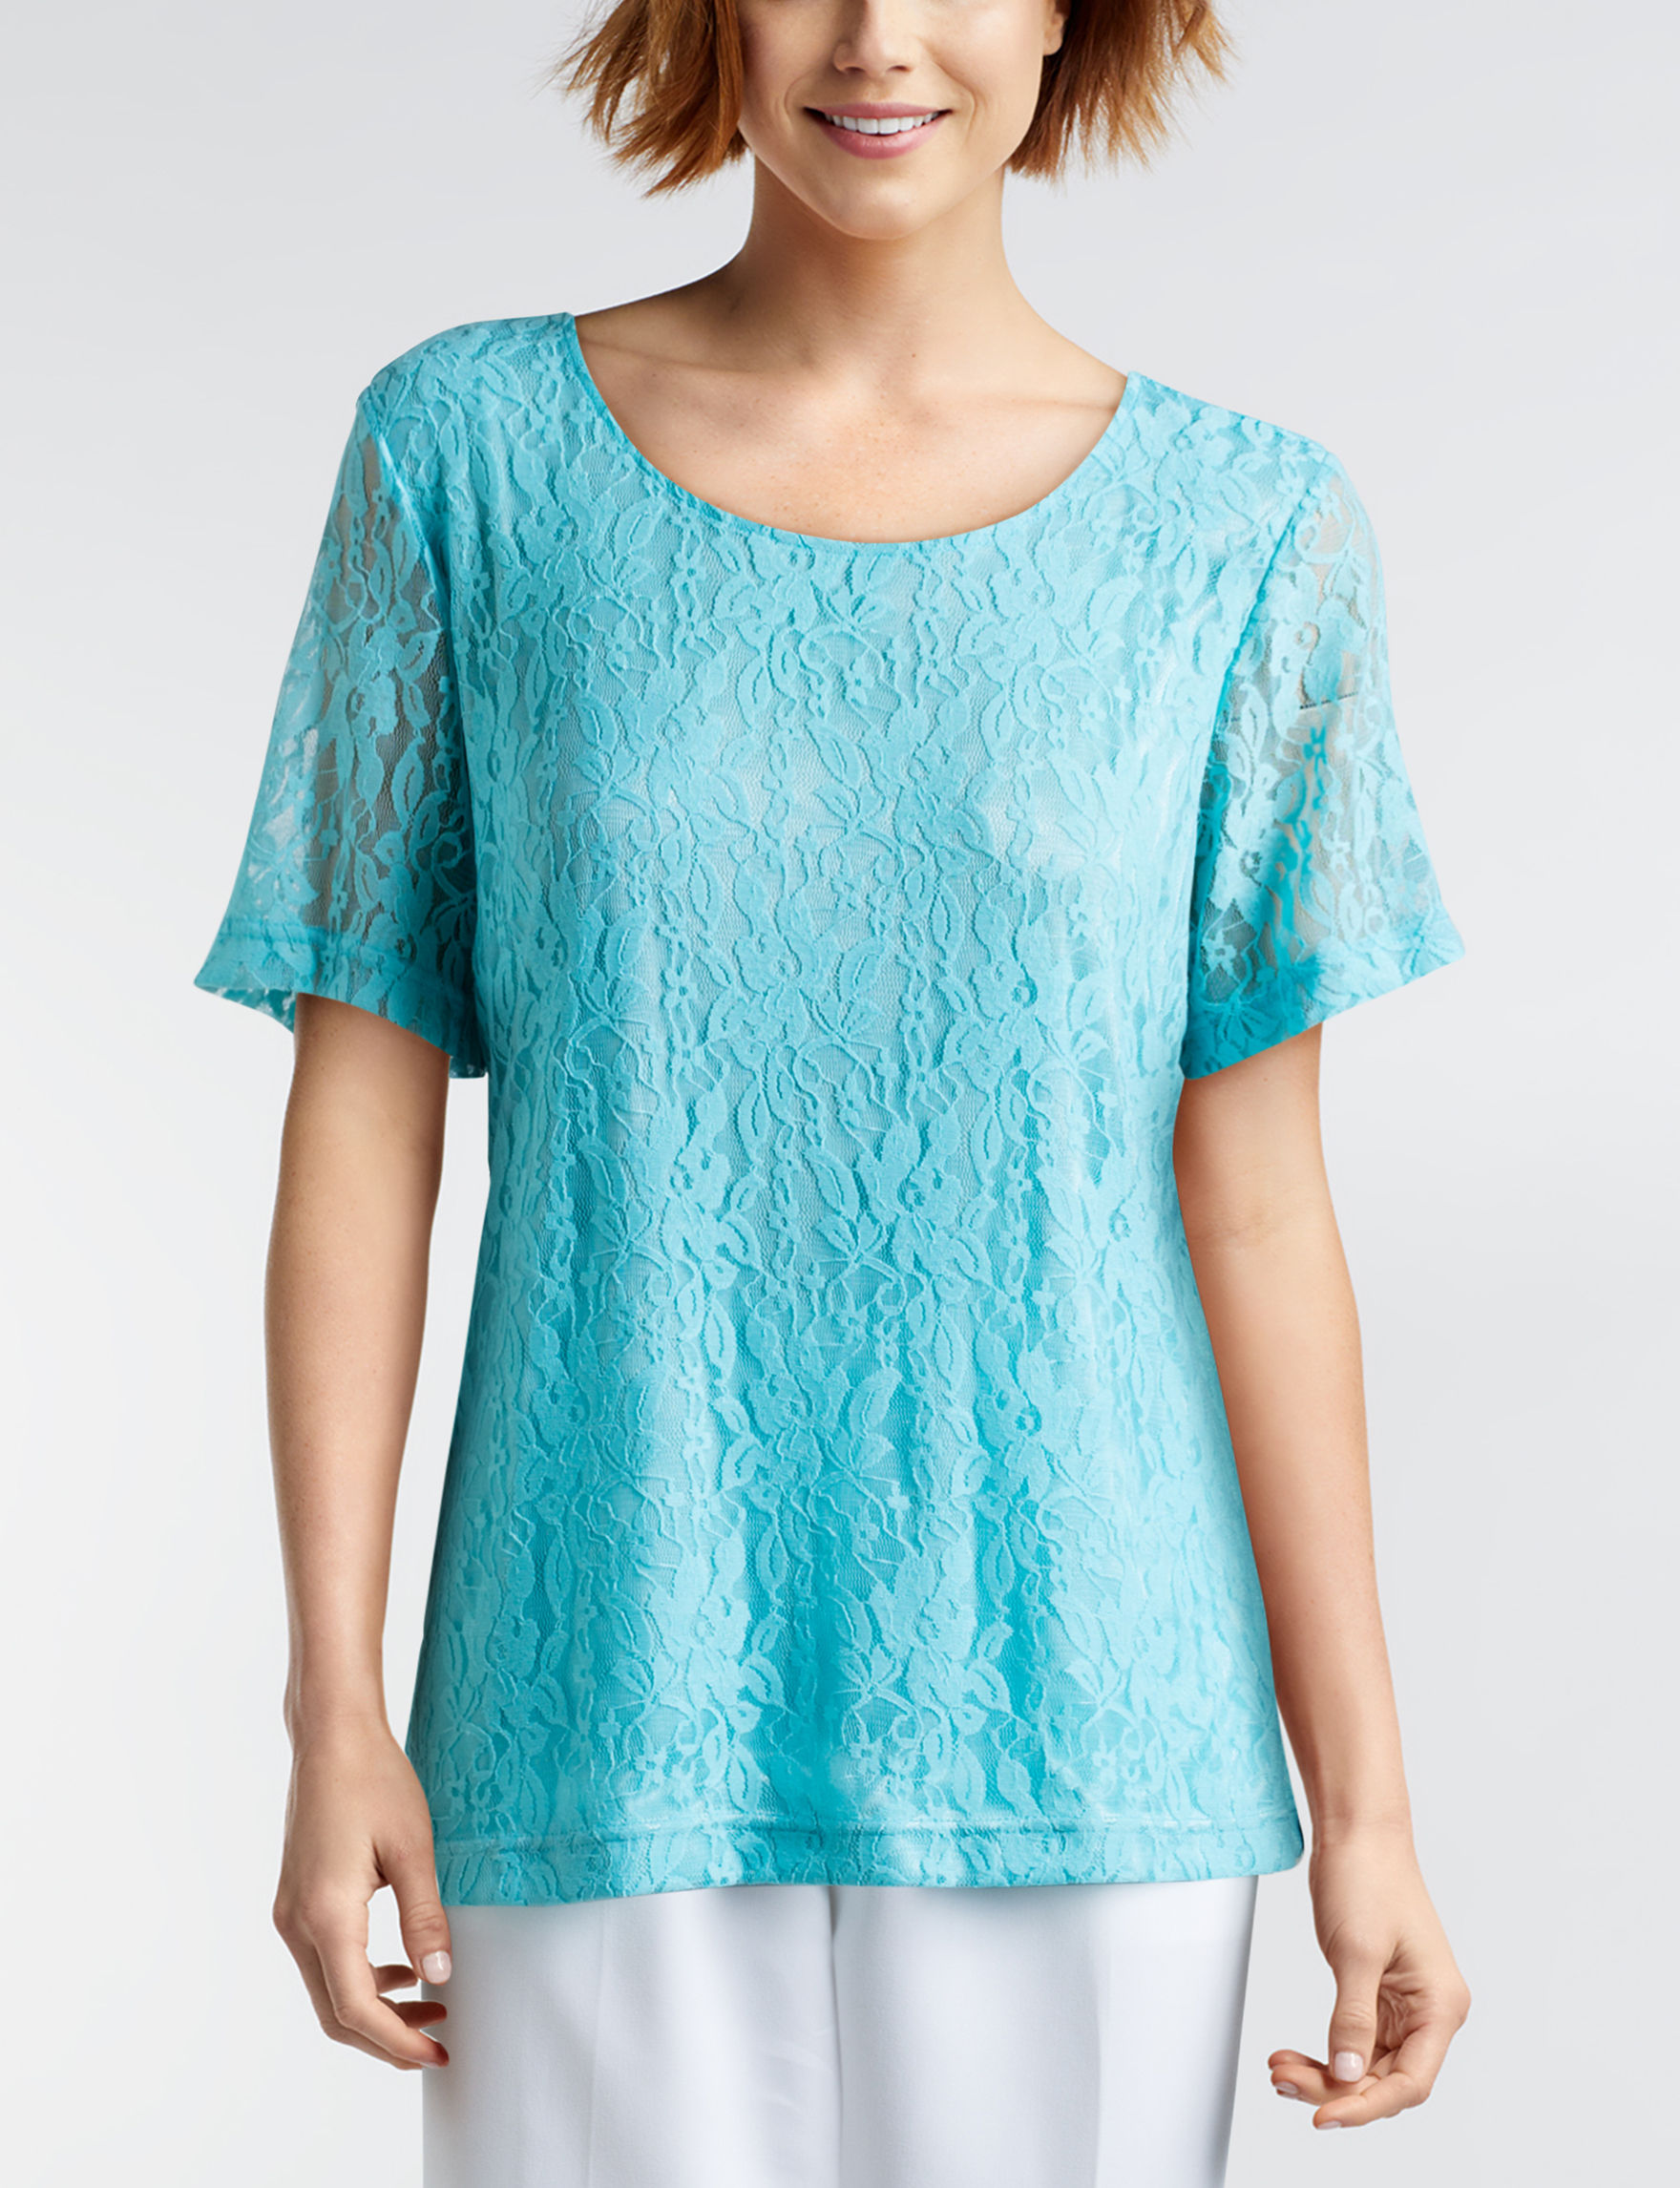 Cathy Daniels Turquoise Shirts & Blouses